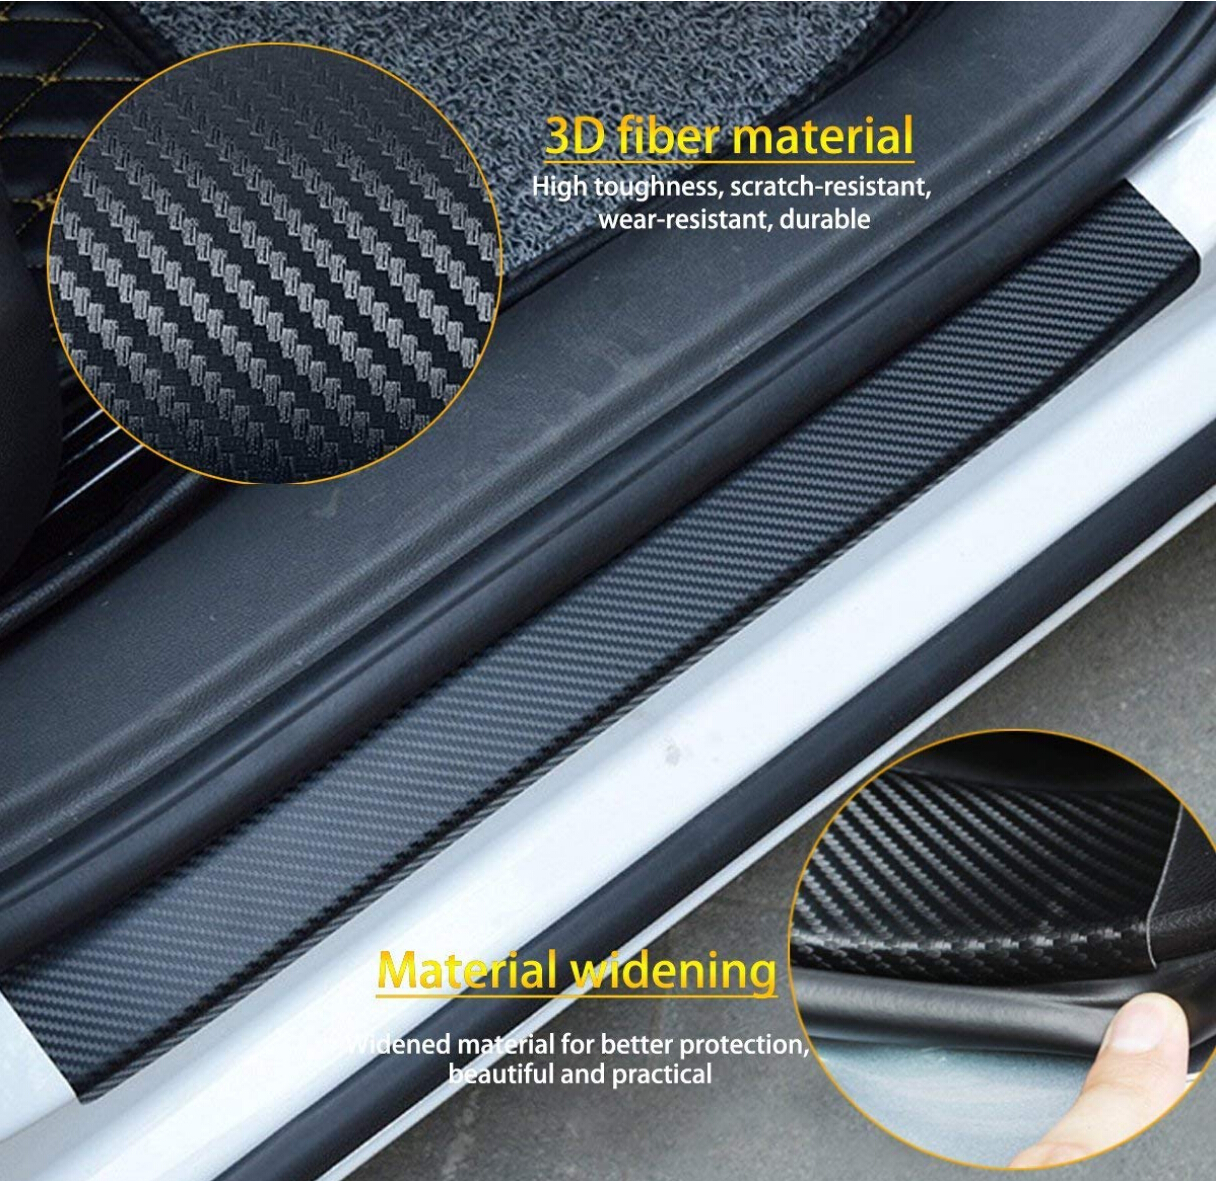 Image 5 - 4pcs Door Carbon Fiber Car Scuff Plate sticker Vinyl Decal sticker for mazda MS mazda 2 mazda 3 mazda 6 M5 cx 5-in Car Tax Disc Holders from Automobiles & Motorcycles